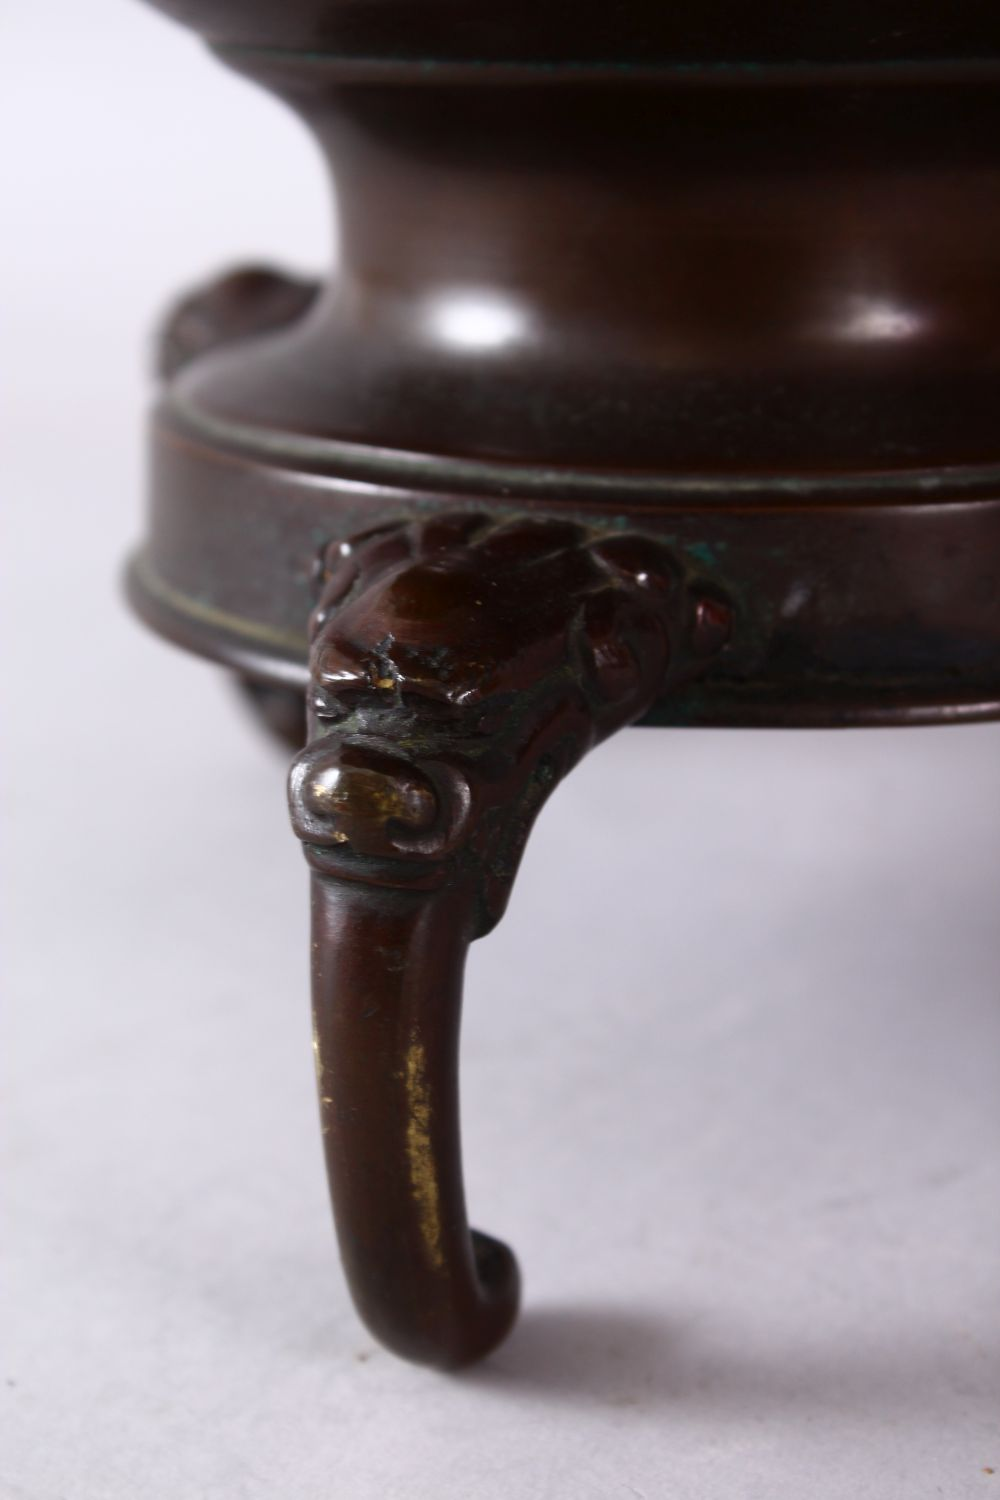 A 19TH CENTURY JAPANESE BRONZE TWO HANDLED VASE on three curving legs, with large circular top - Image 3 of 6